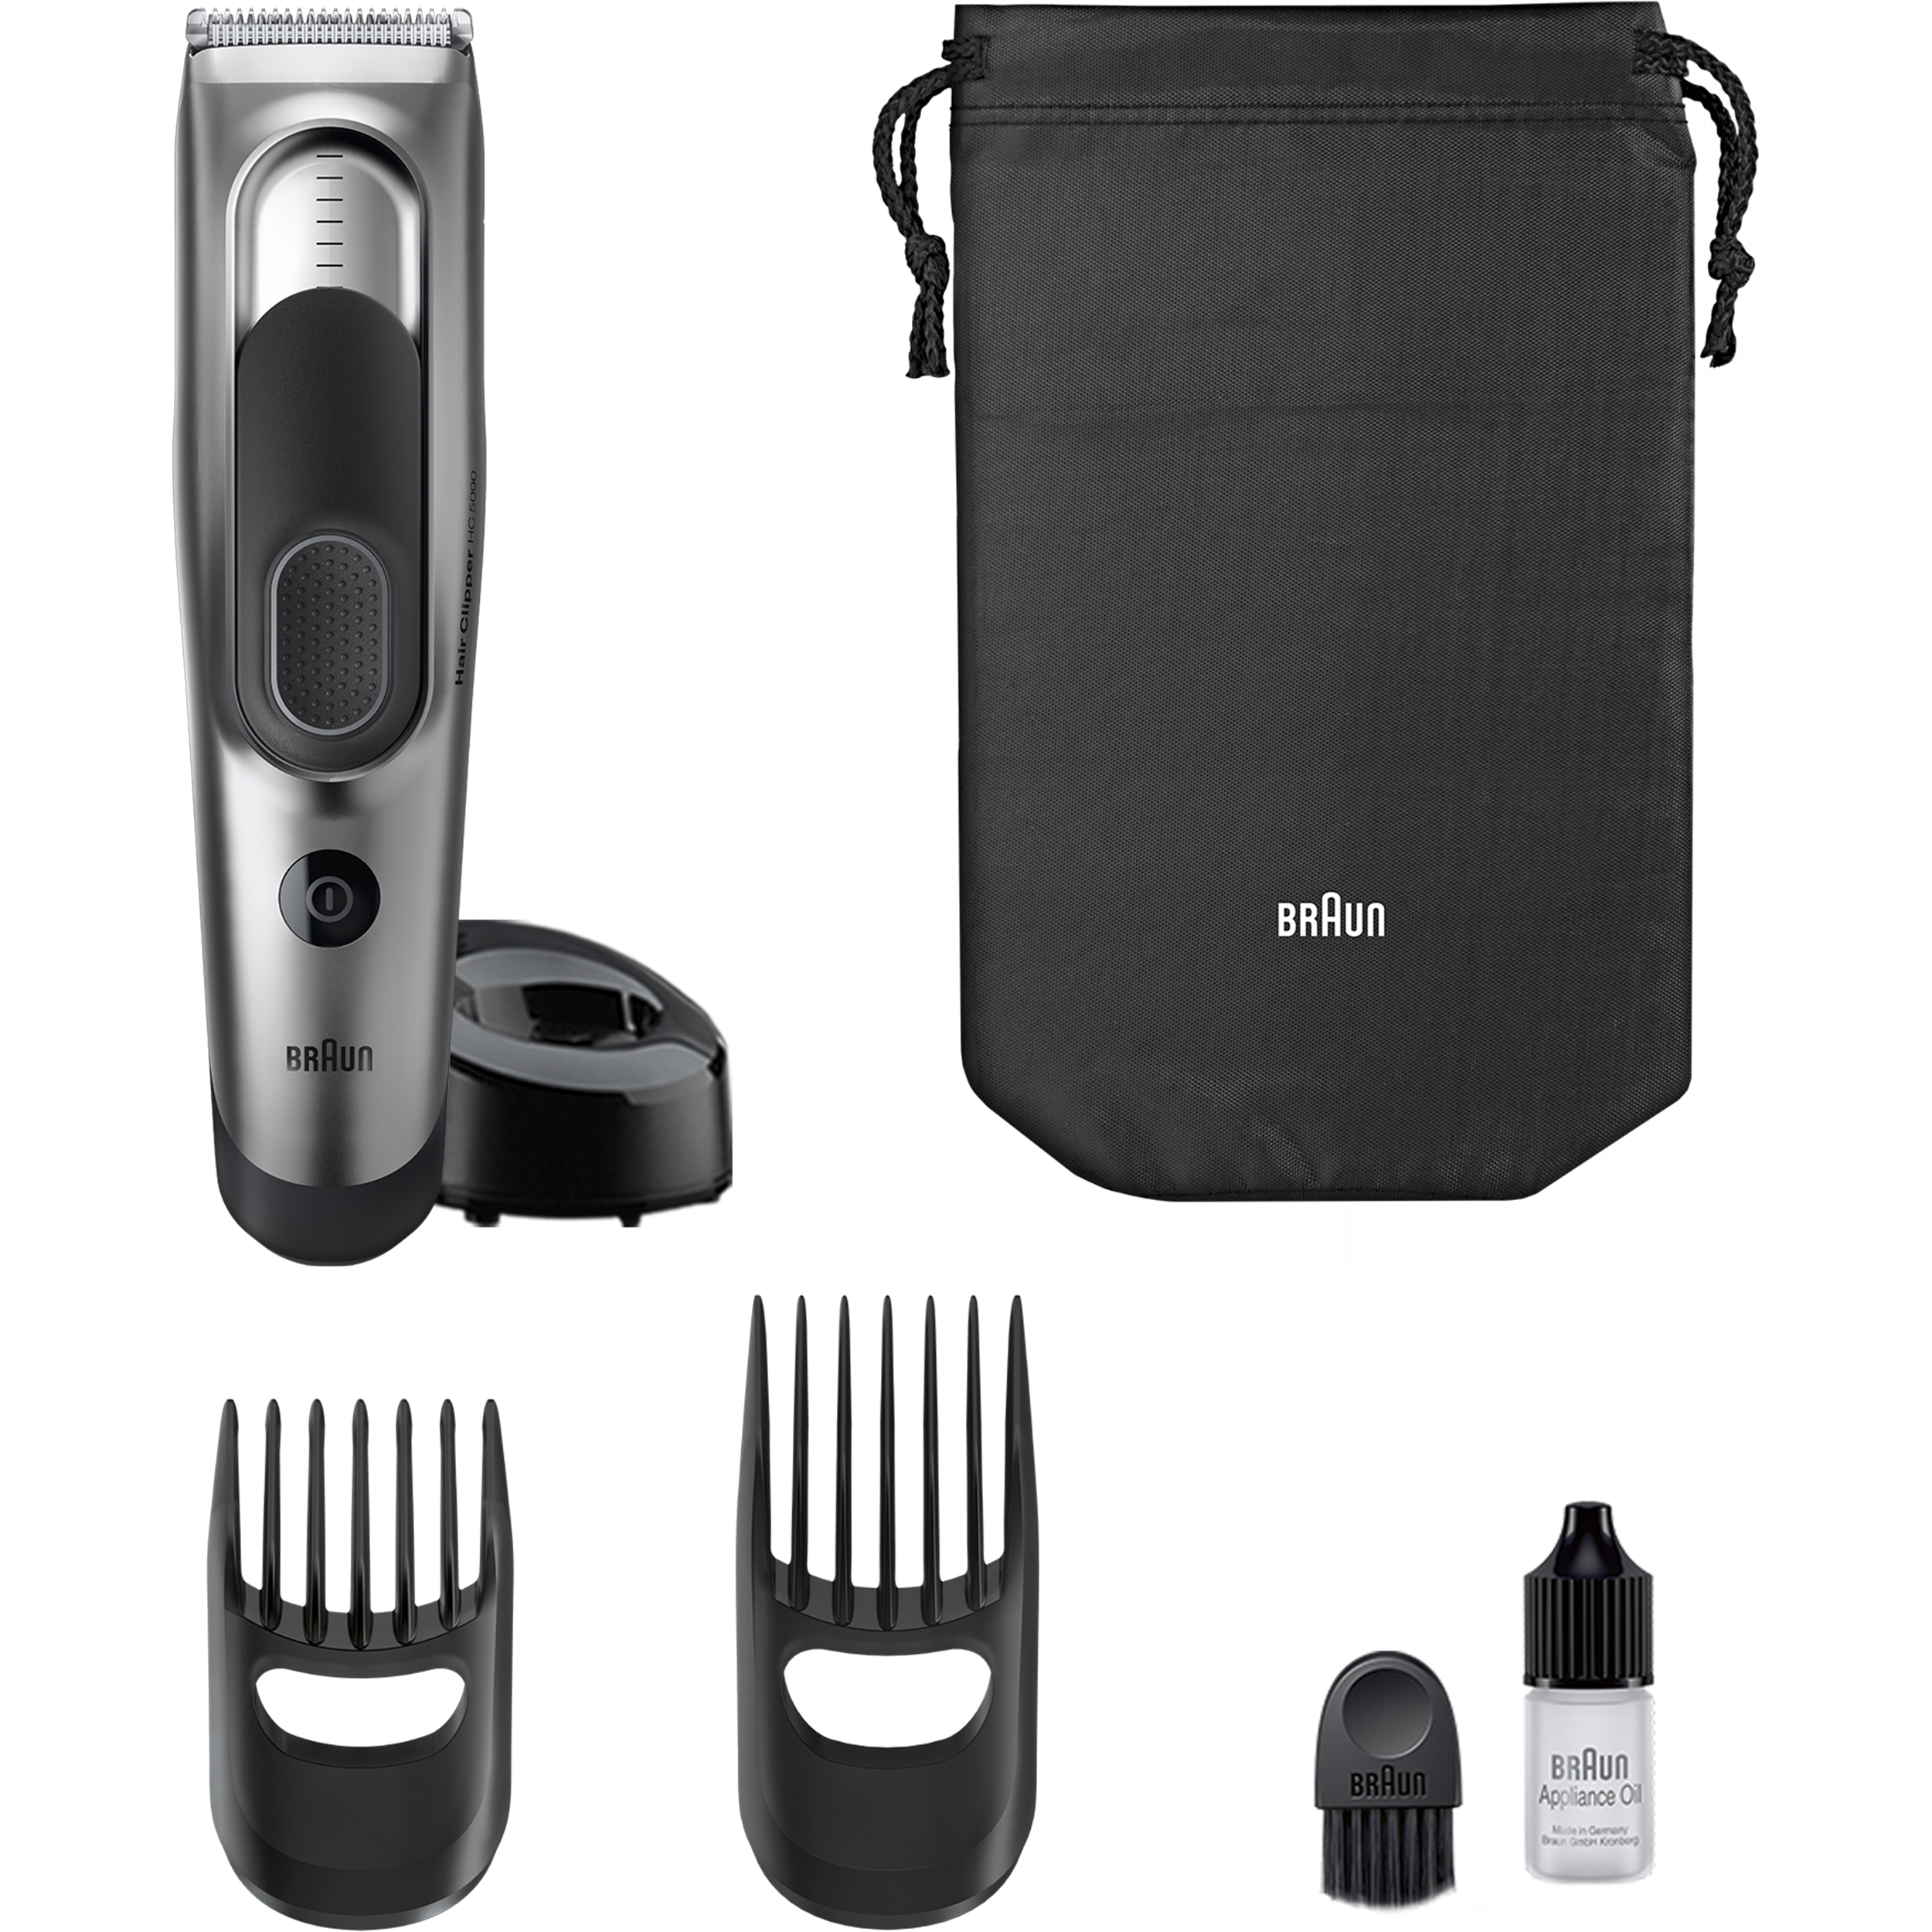 Braun Hair Clipper HC5090 – Ultimate hair grooming experience from Braun in 17 lengths ($5 Rebate Available)